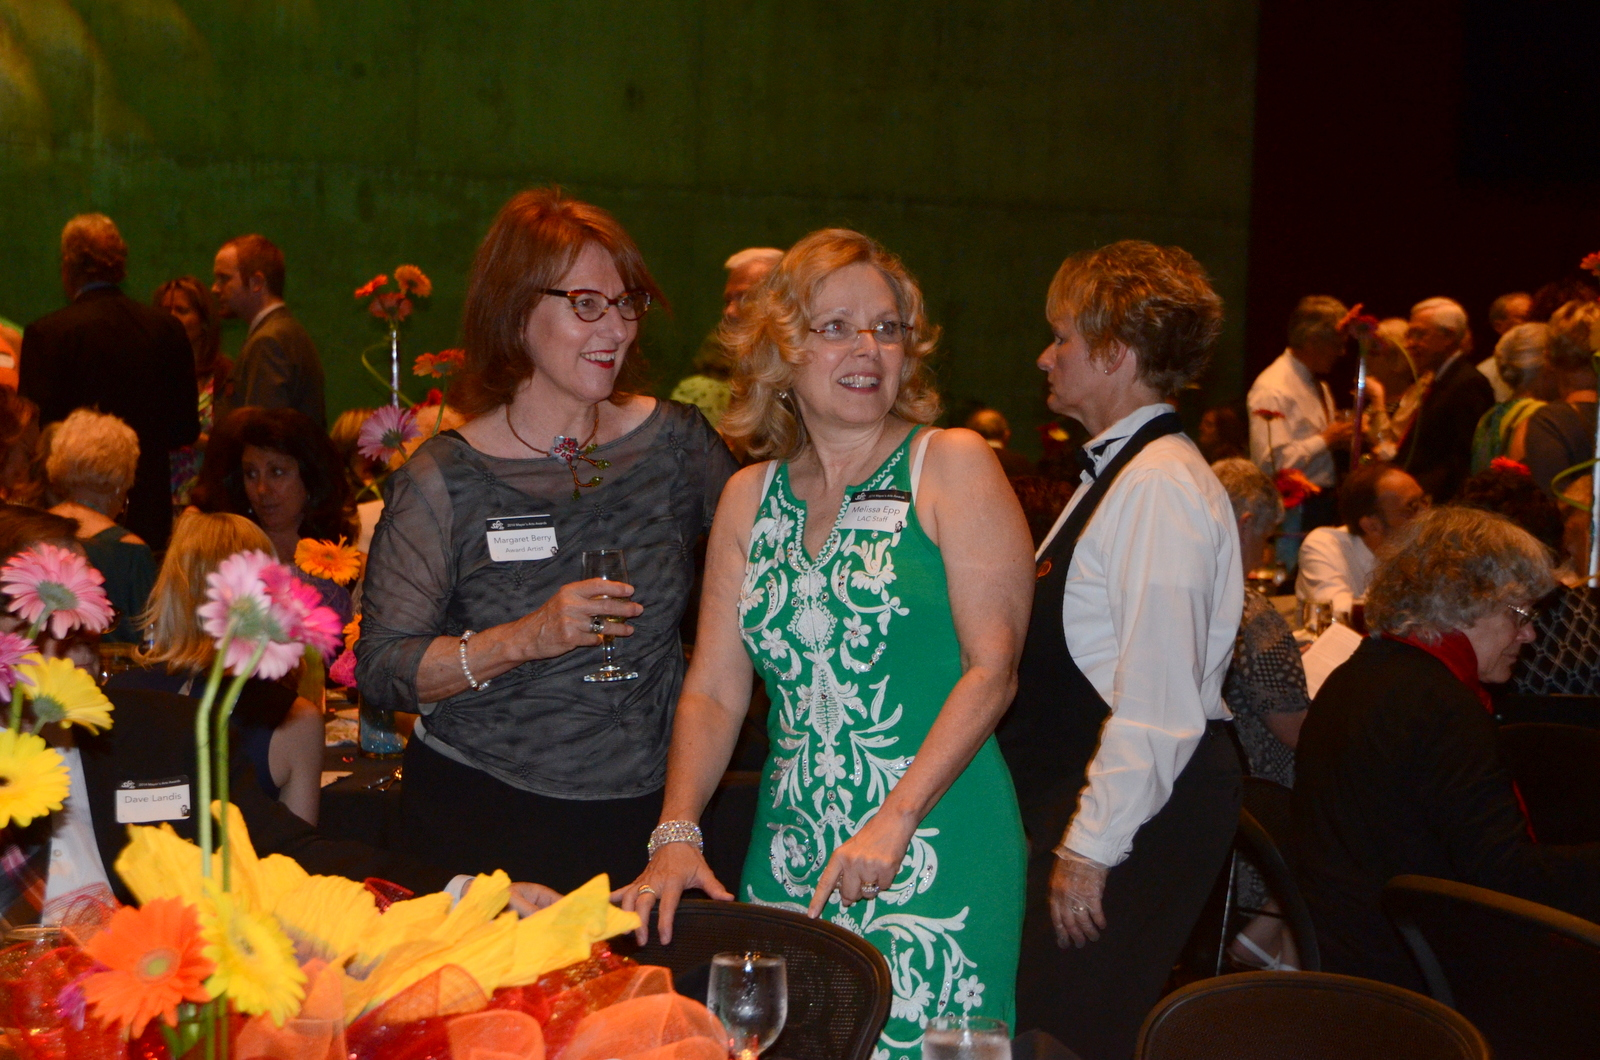 Margaret Berry and Melissa Epp celebrate the arts.